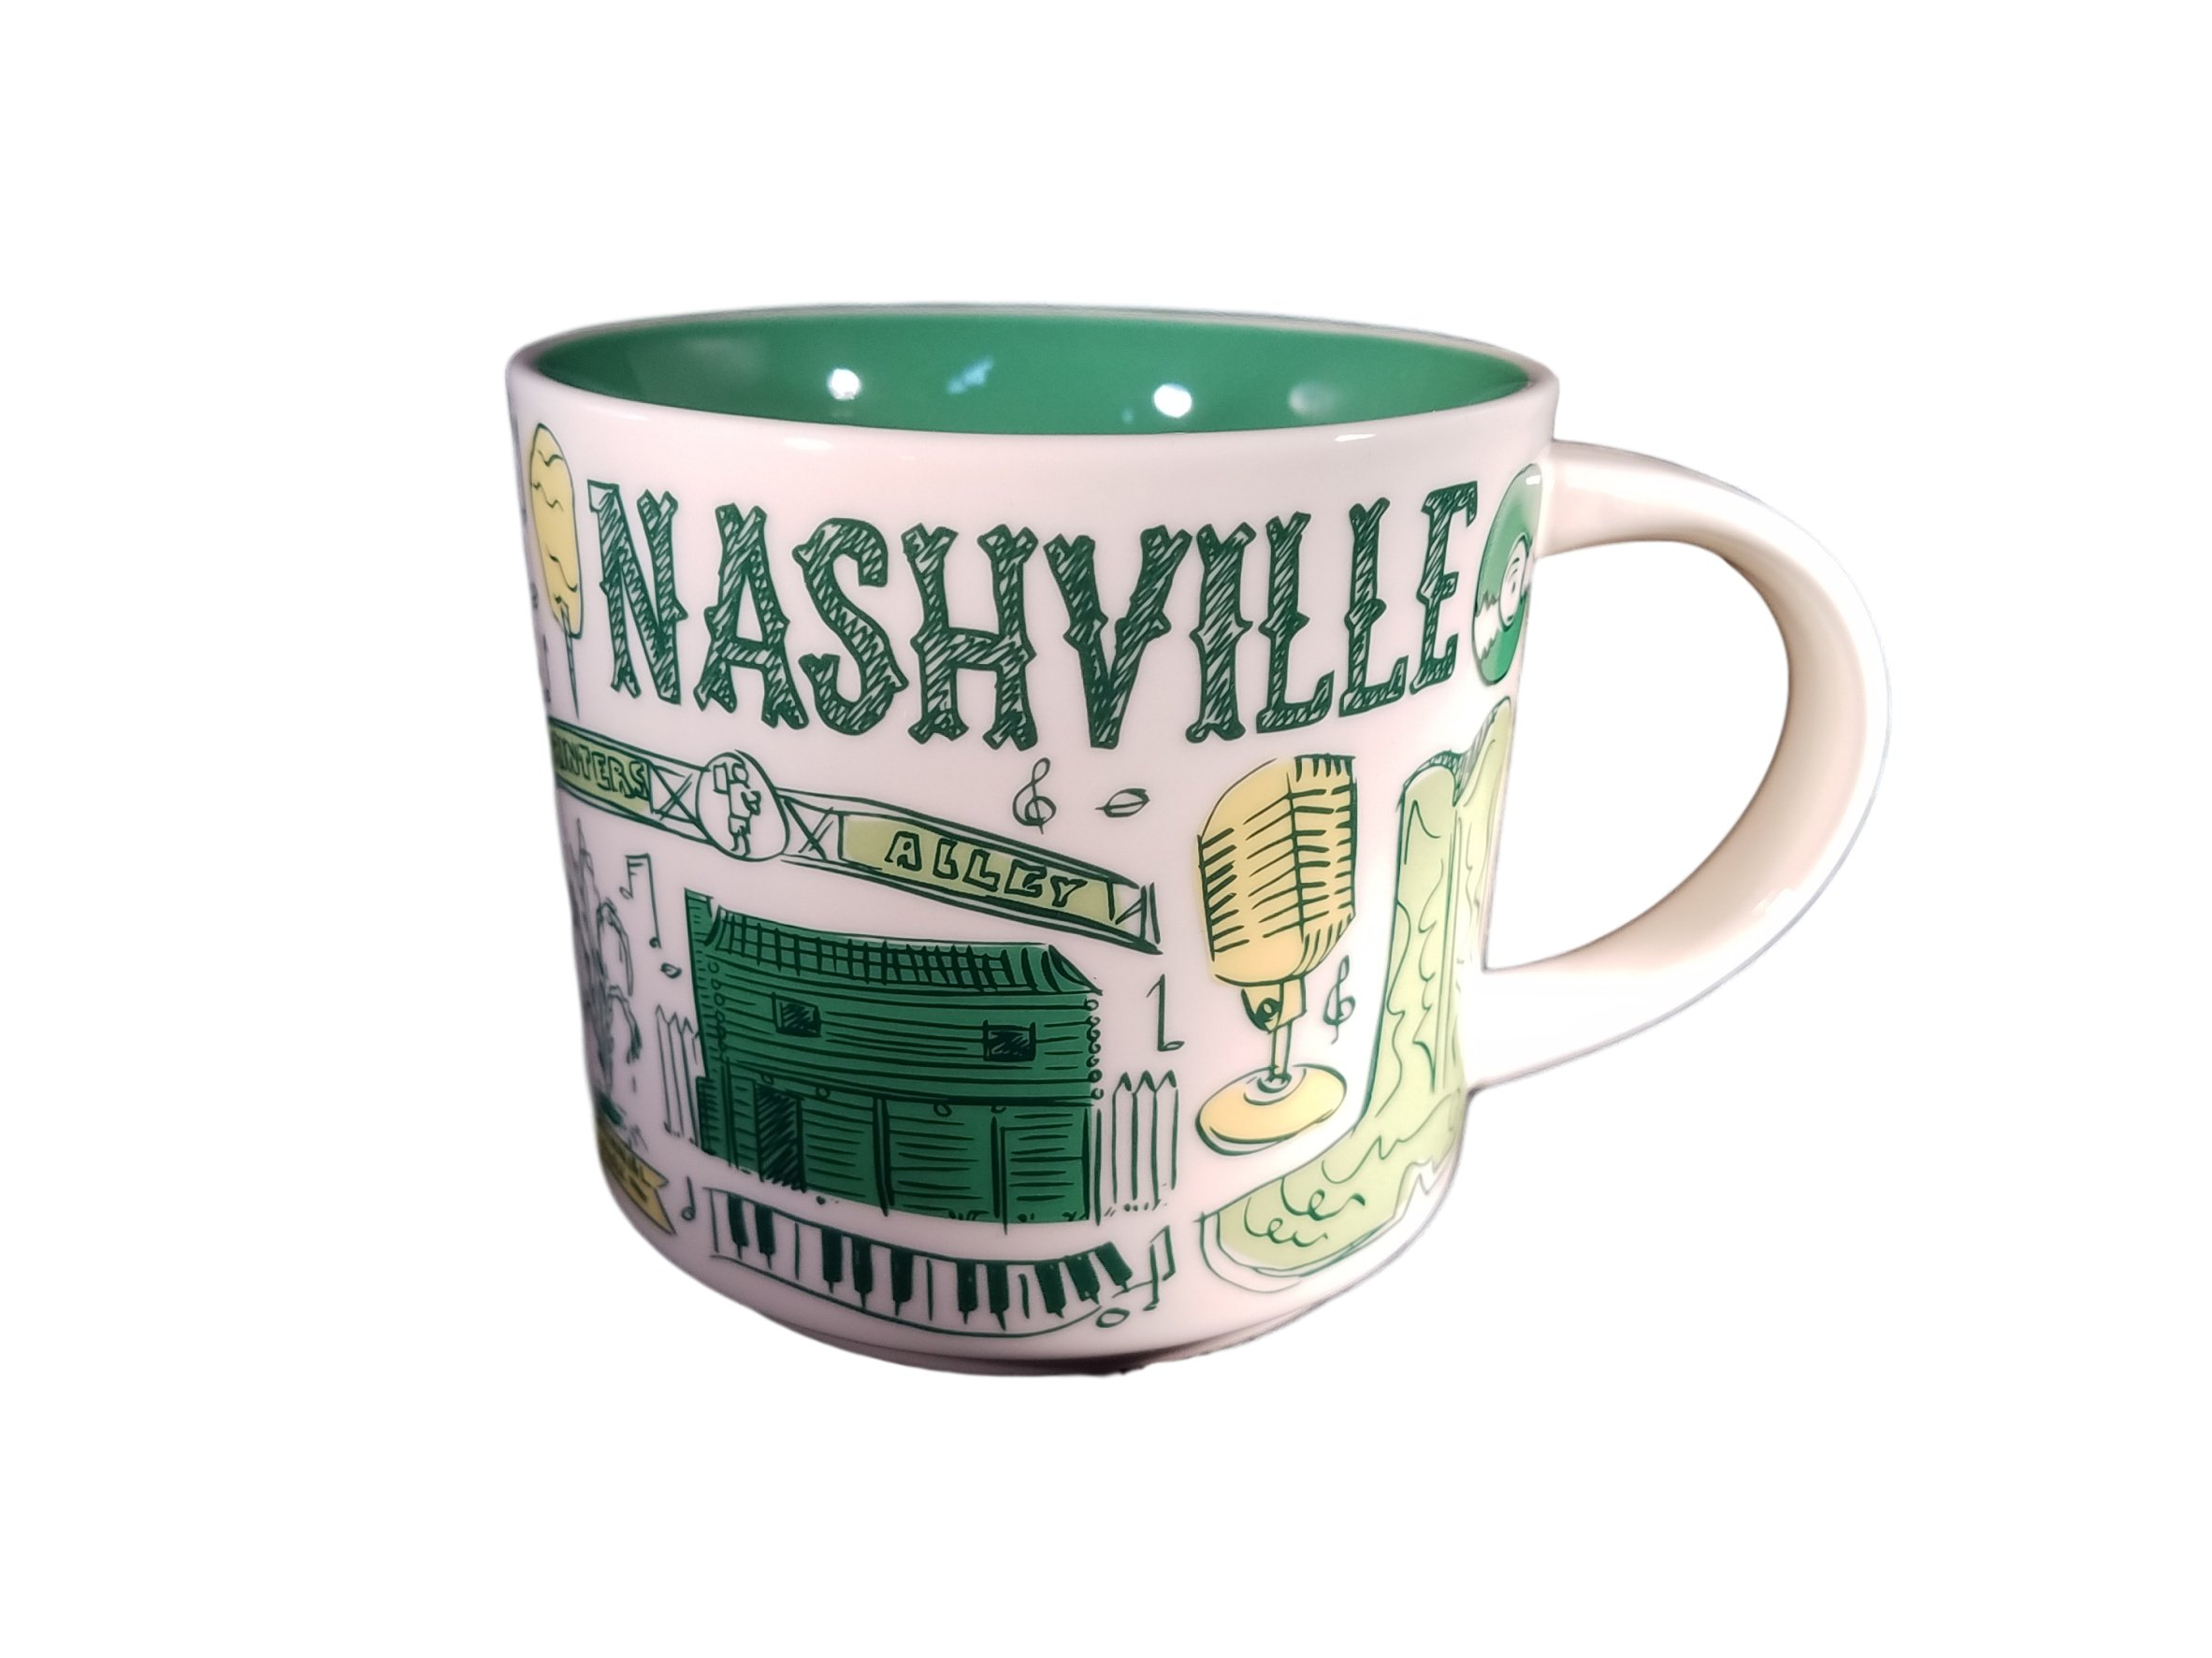 Starbucks Nashville Been There Series Ceramic Coffee Mug, 14 oz